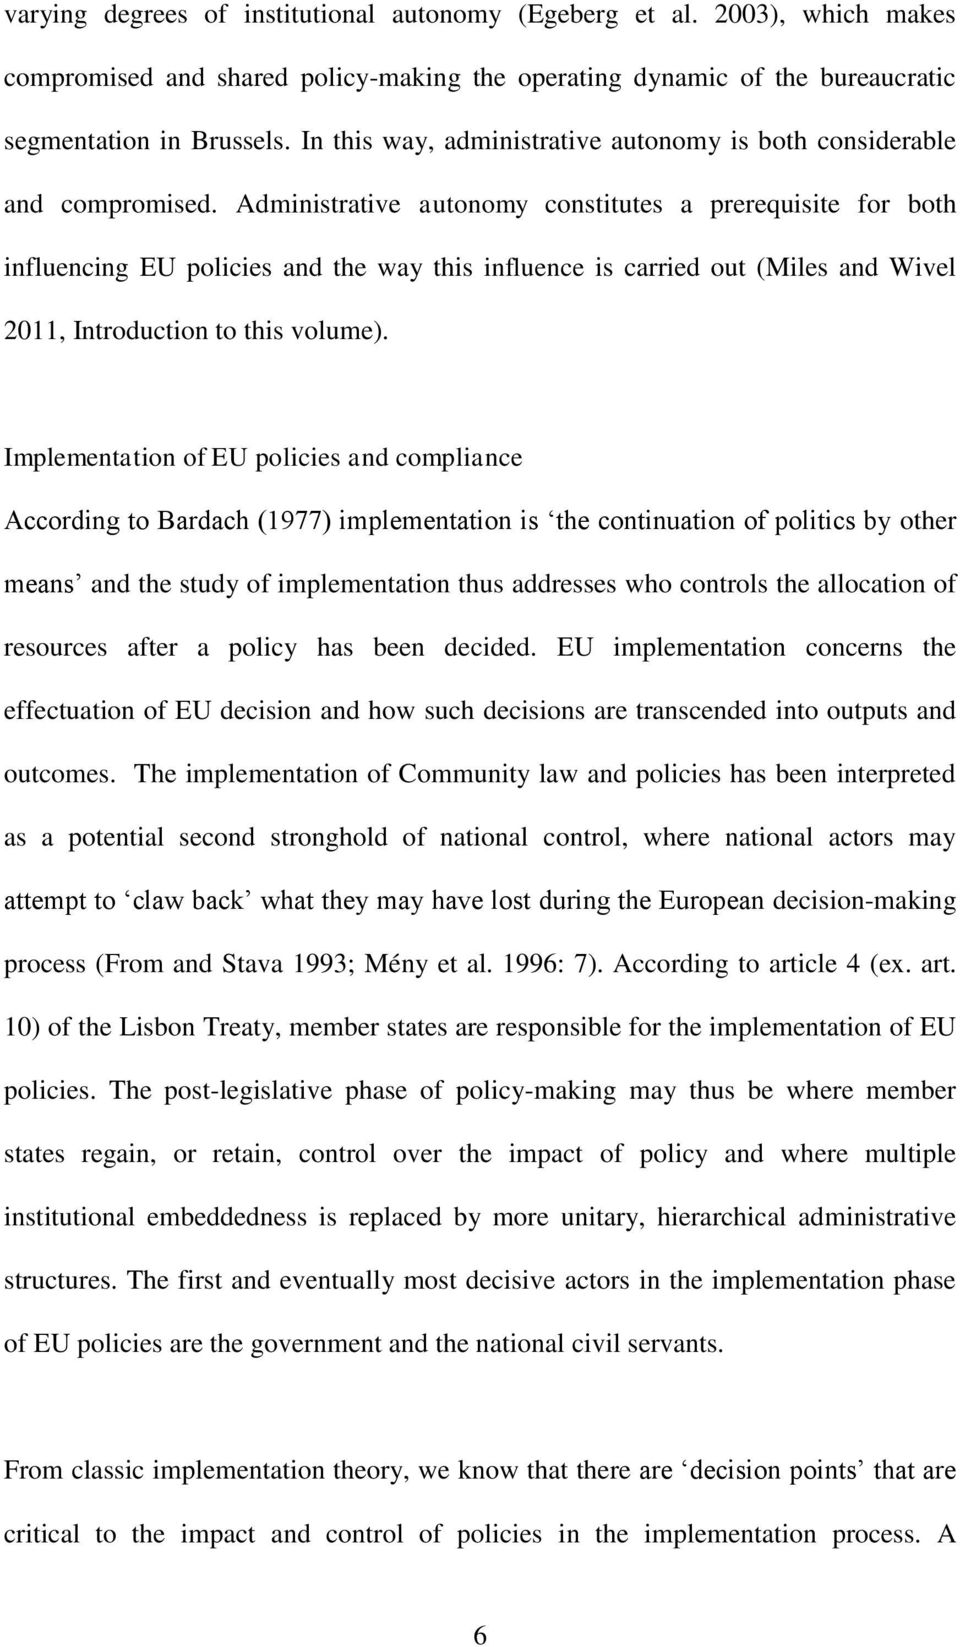 Administrative autonomy constitutes a prerequisite for both influencing EU policies and the way this influence is carried out (Miles and Wivel 2011, Introduction to this volume).